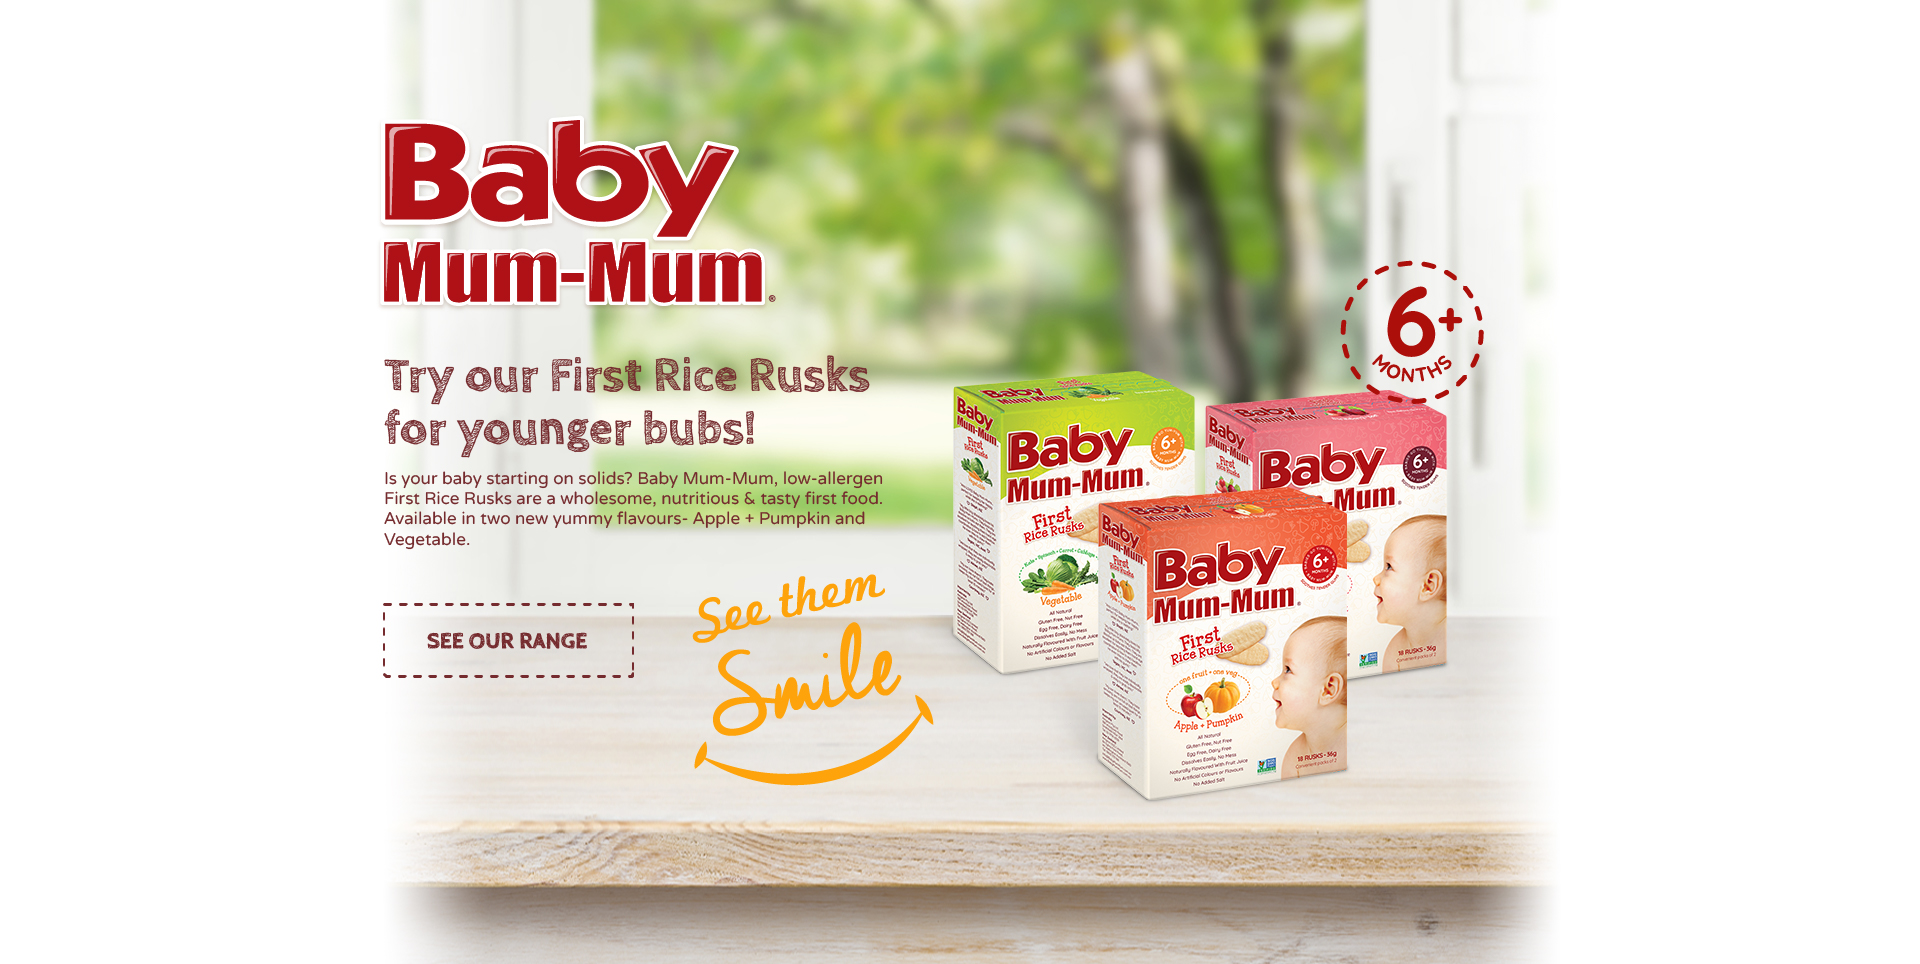 baby Mum Mum First Rice Rusks Vegetable, First Rice Rusks Apple + Pumpkin